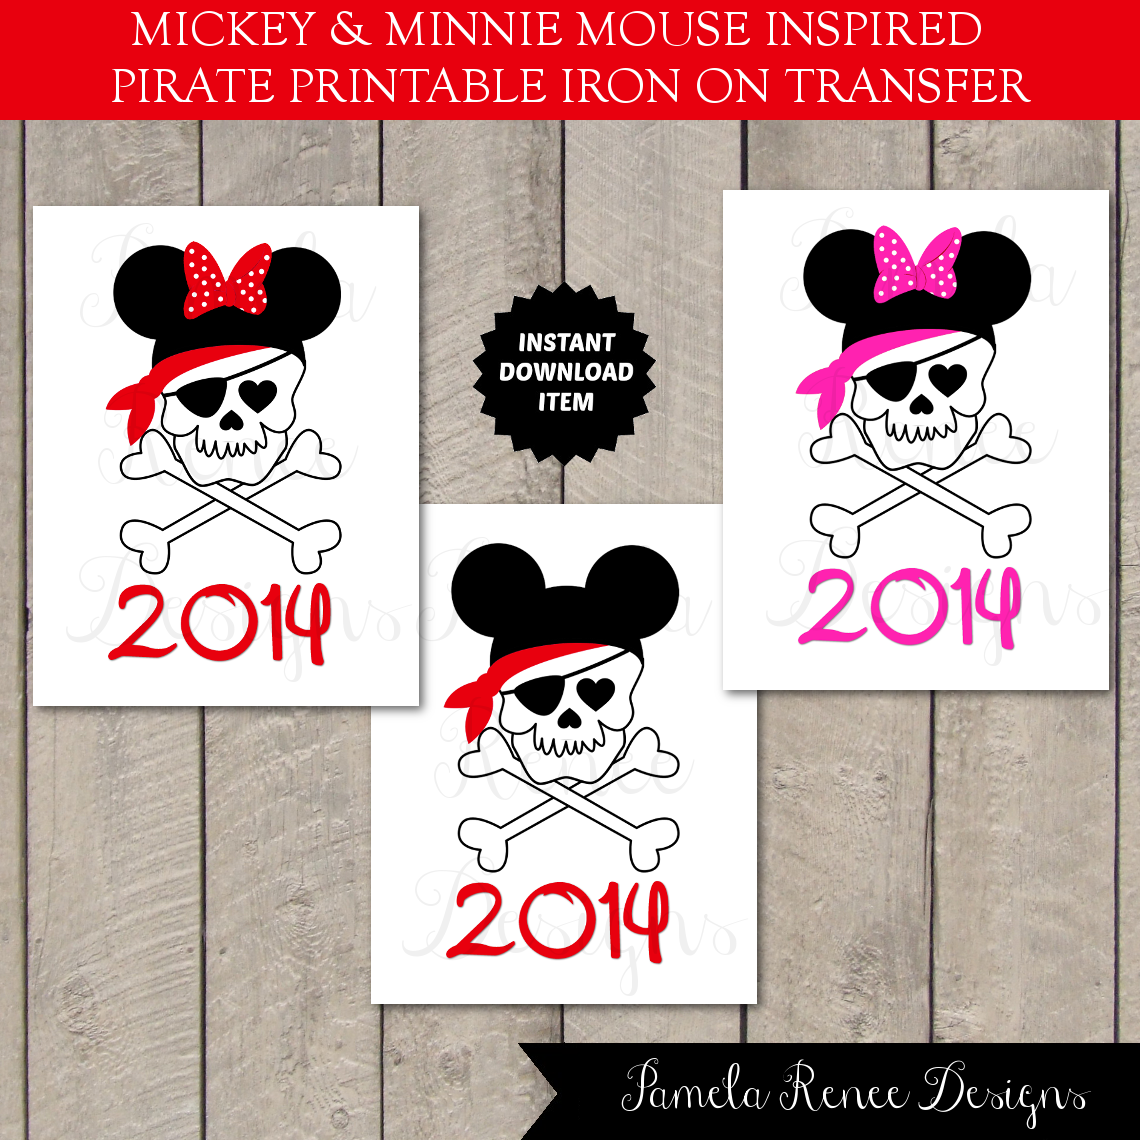 Universal image in printable iron on transfers